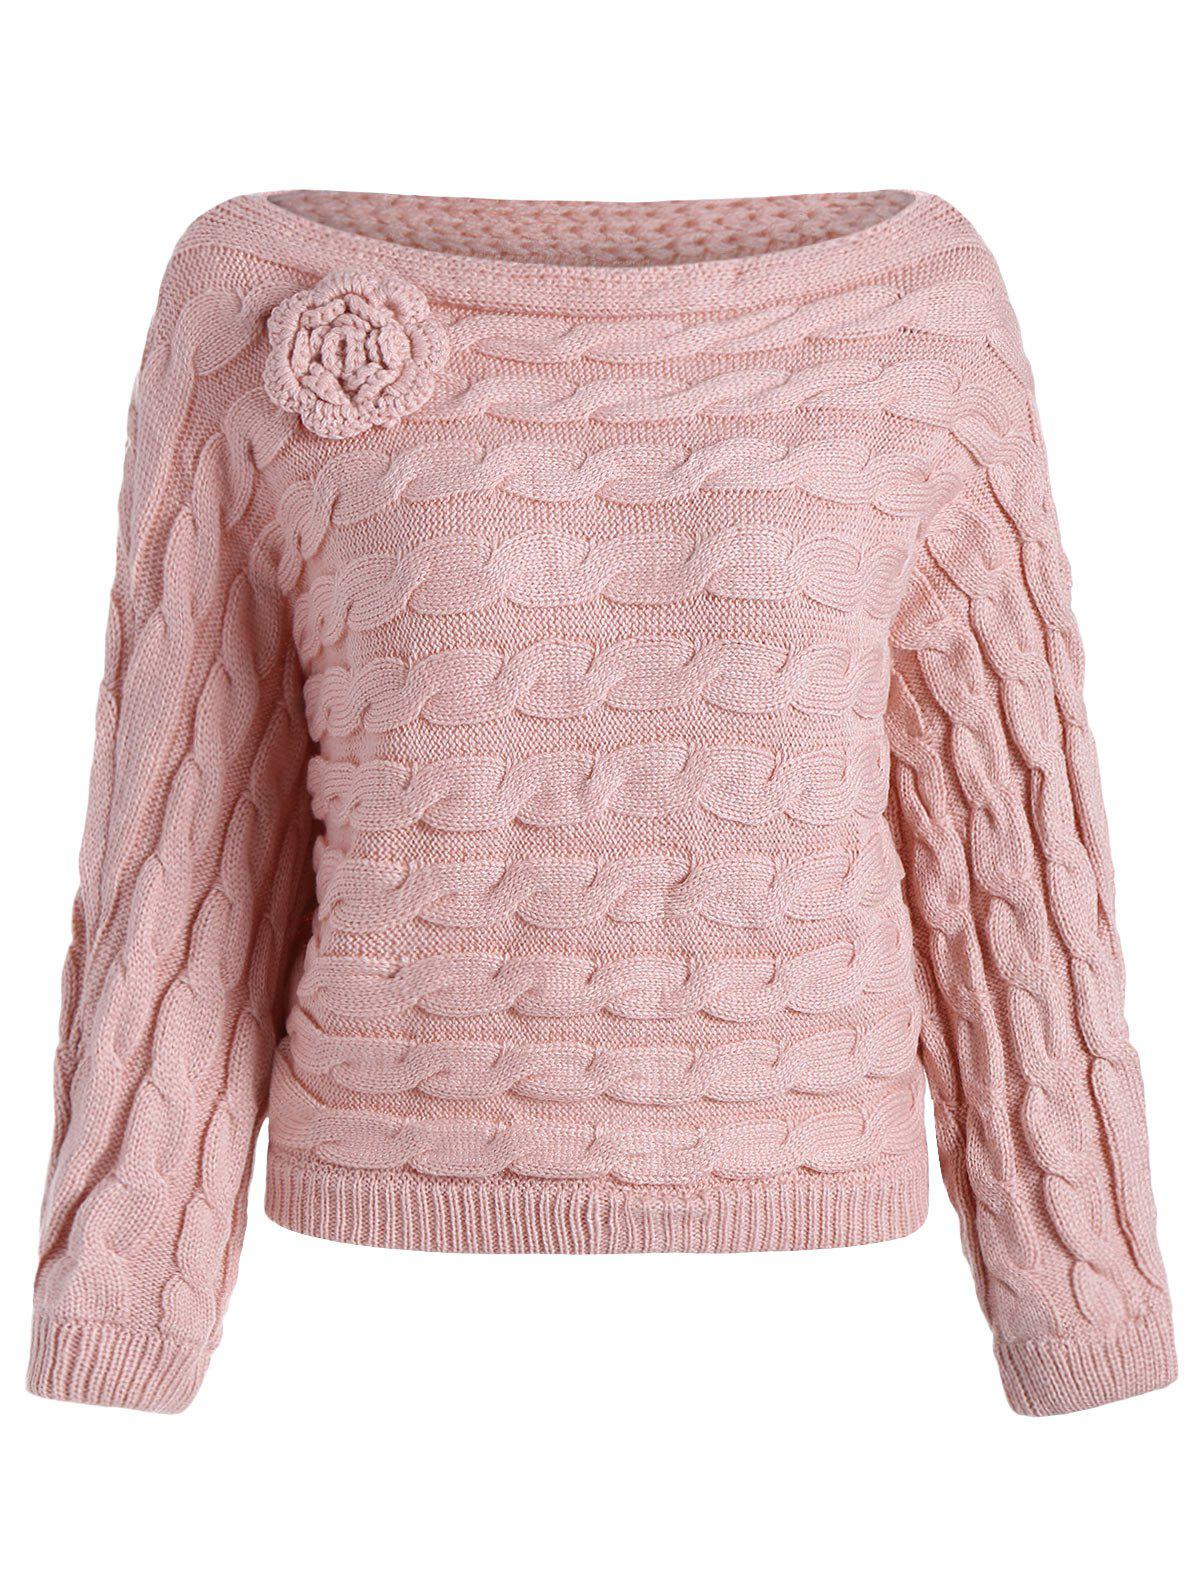 Slash Neck Knit Jumper Sweater - DEEP PINK ONE SIZE(FIT SIZE XS TO M)